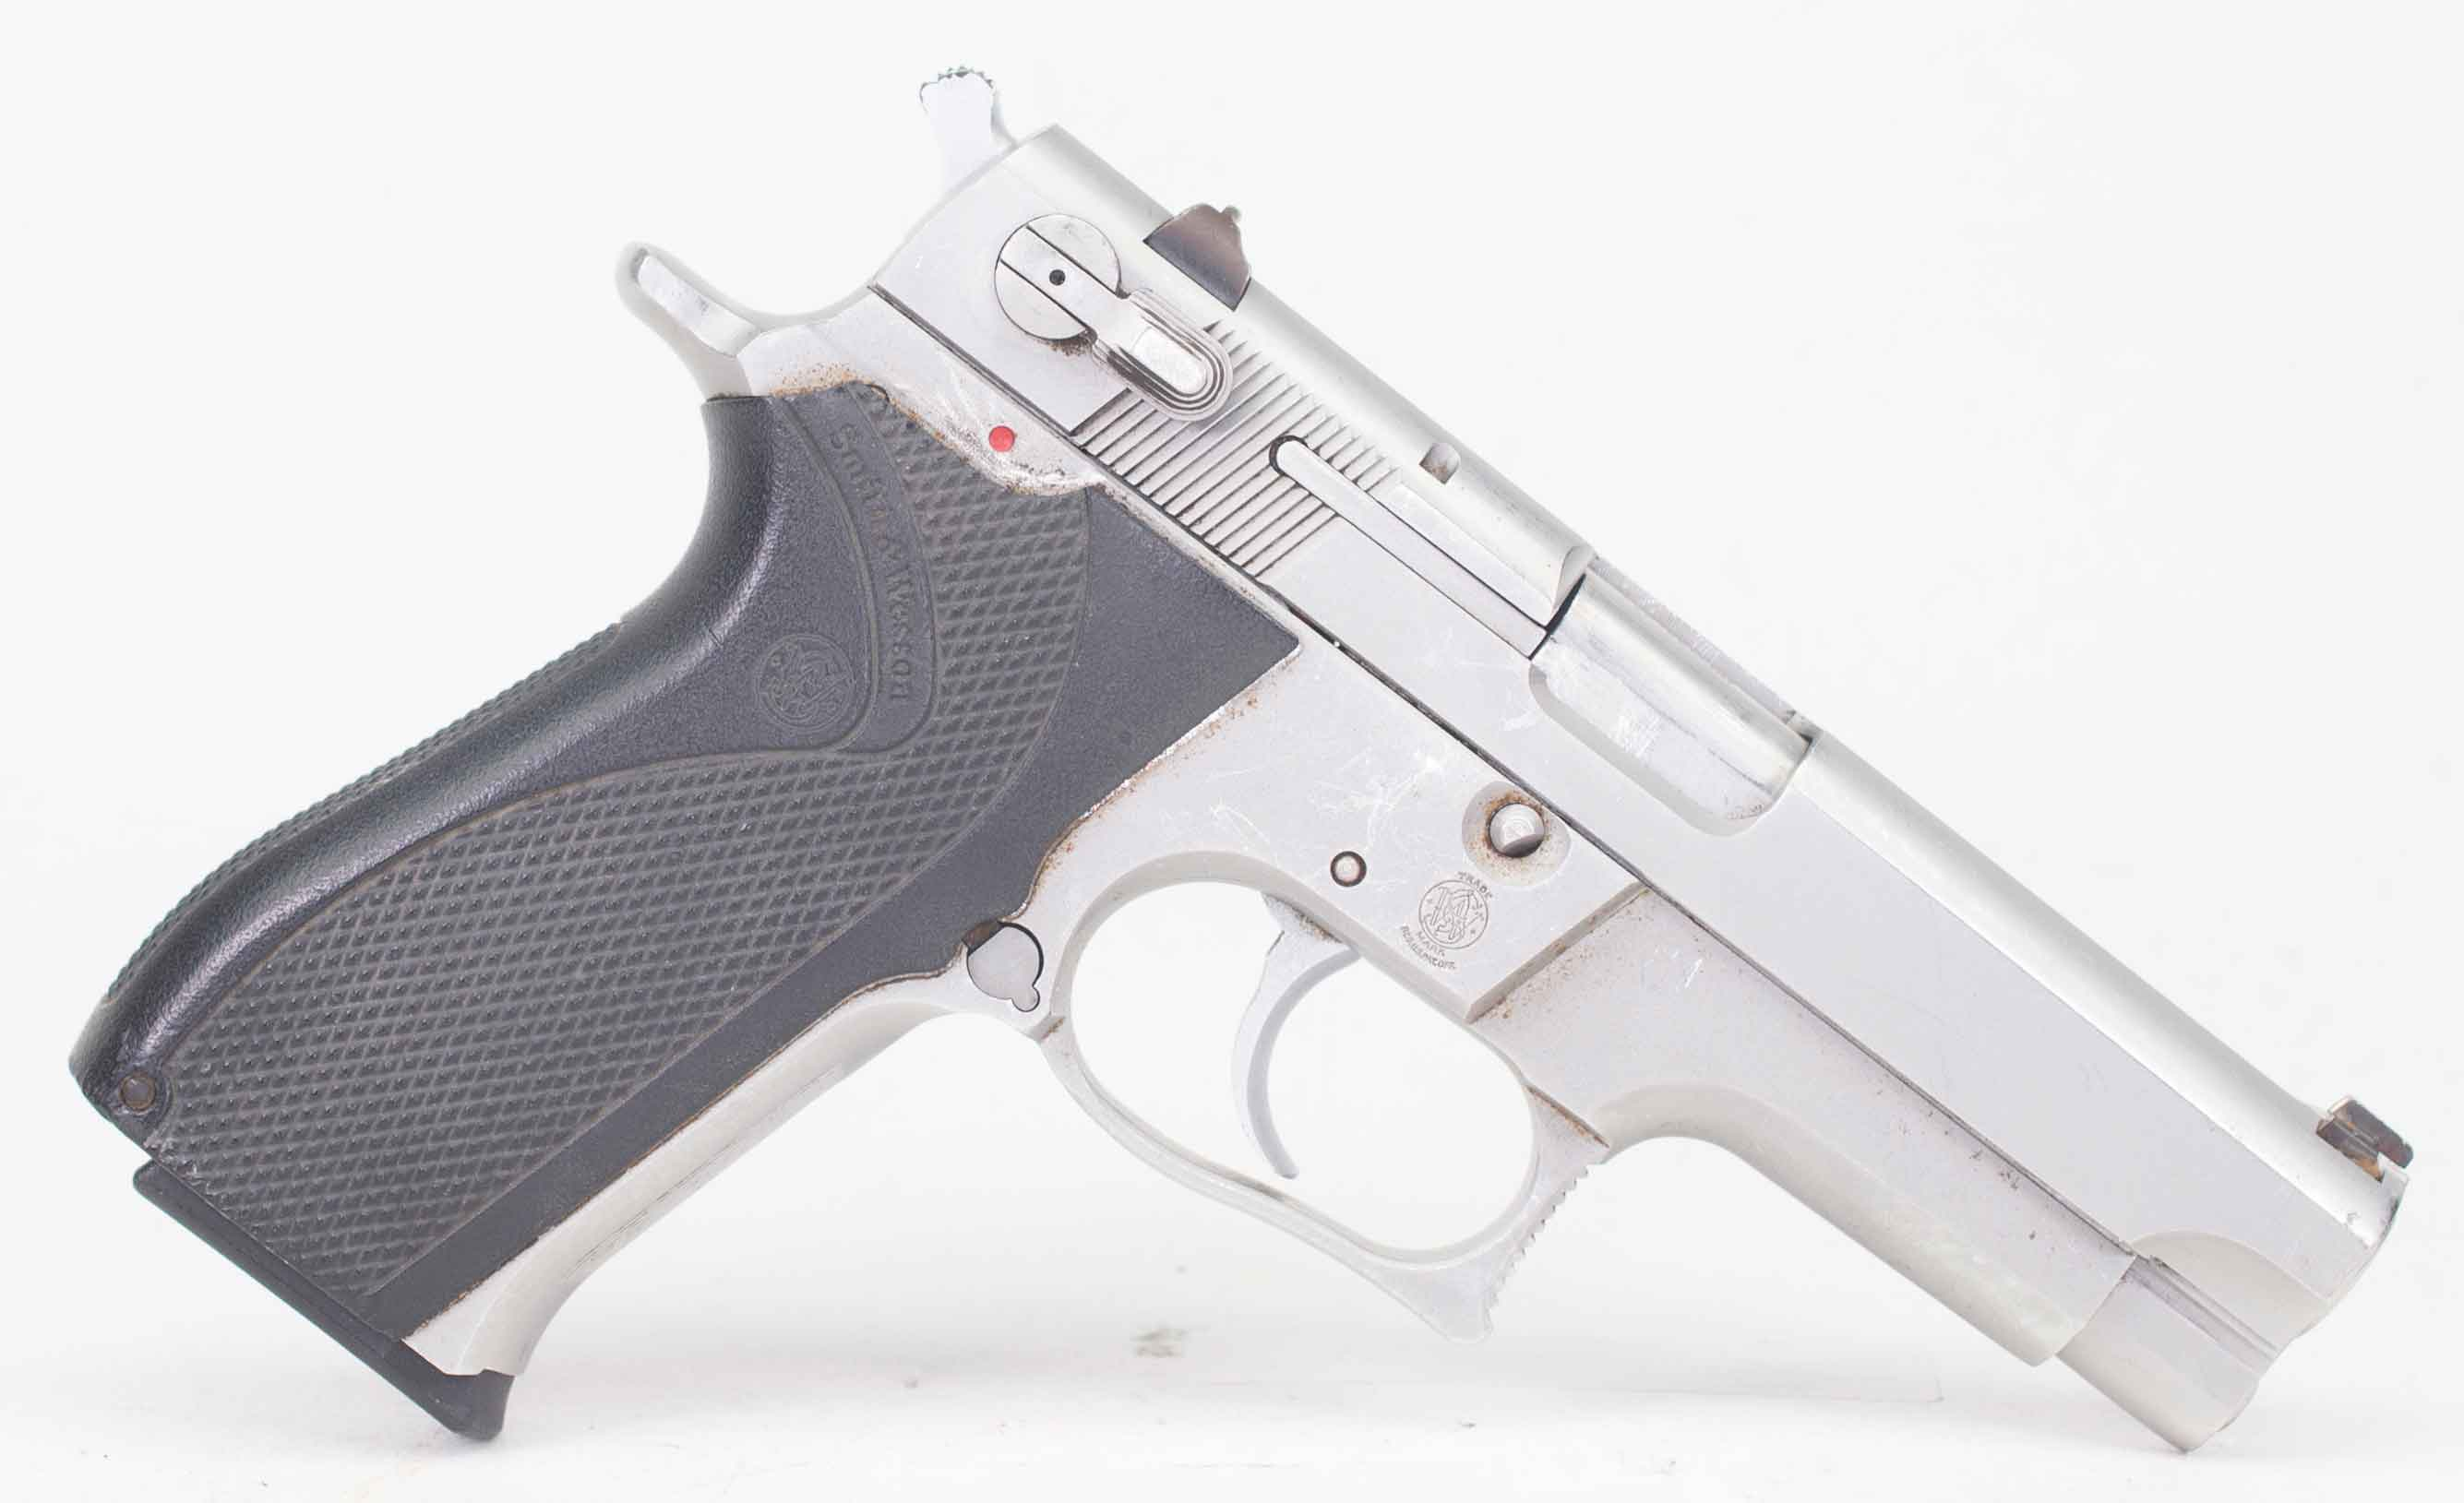 S&W 5906 9MM (Auction ID: 11179503, End Time : Apr  22, 2018